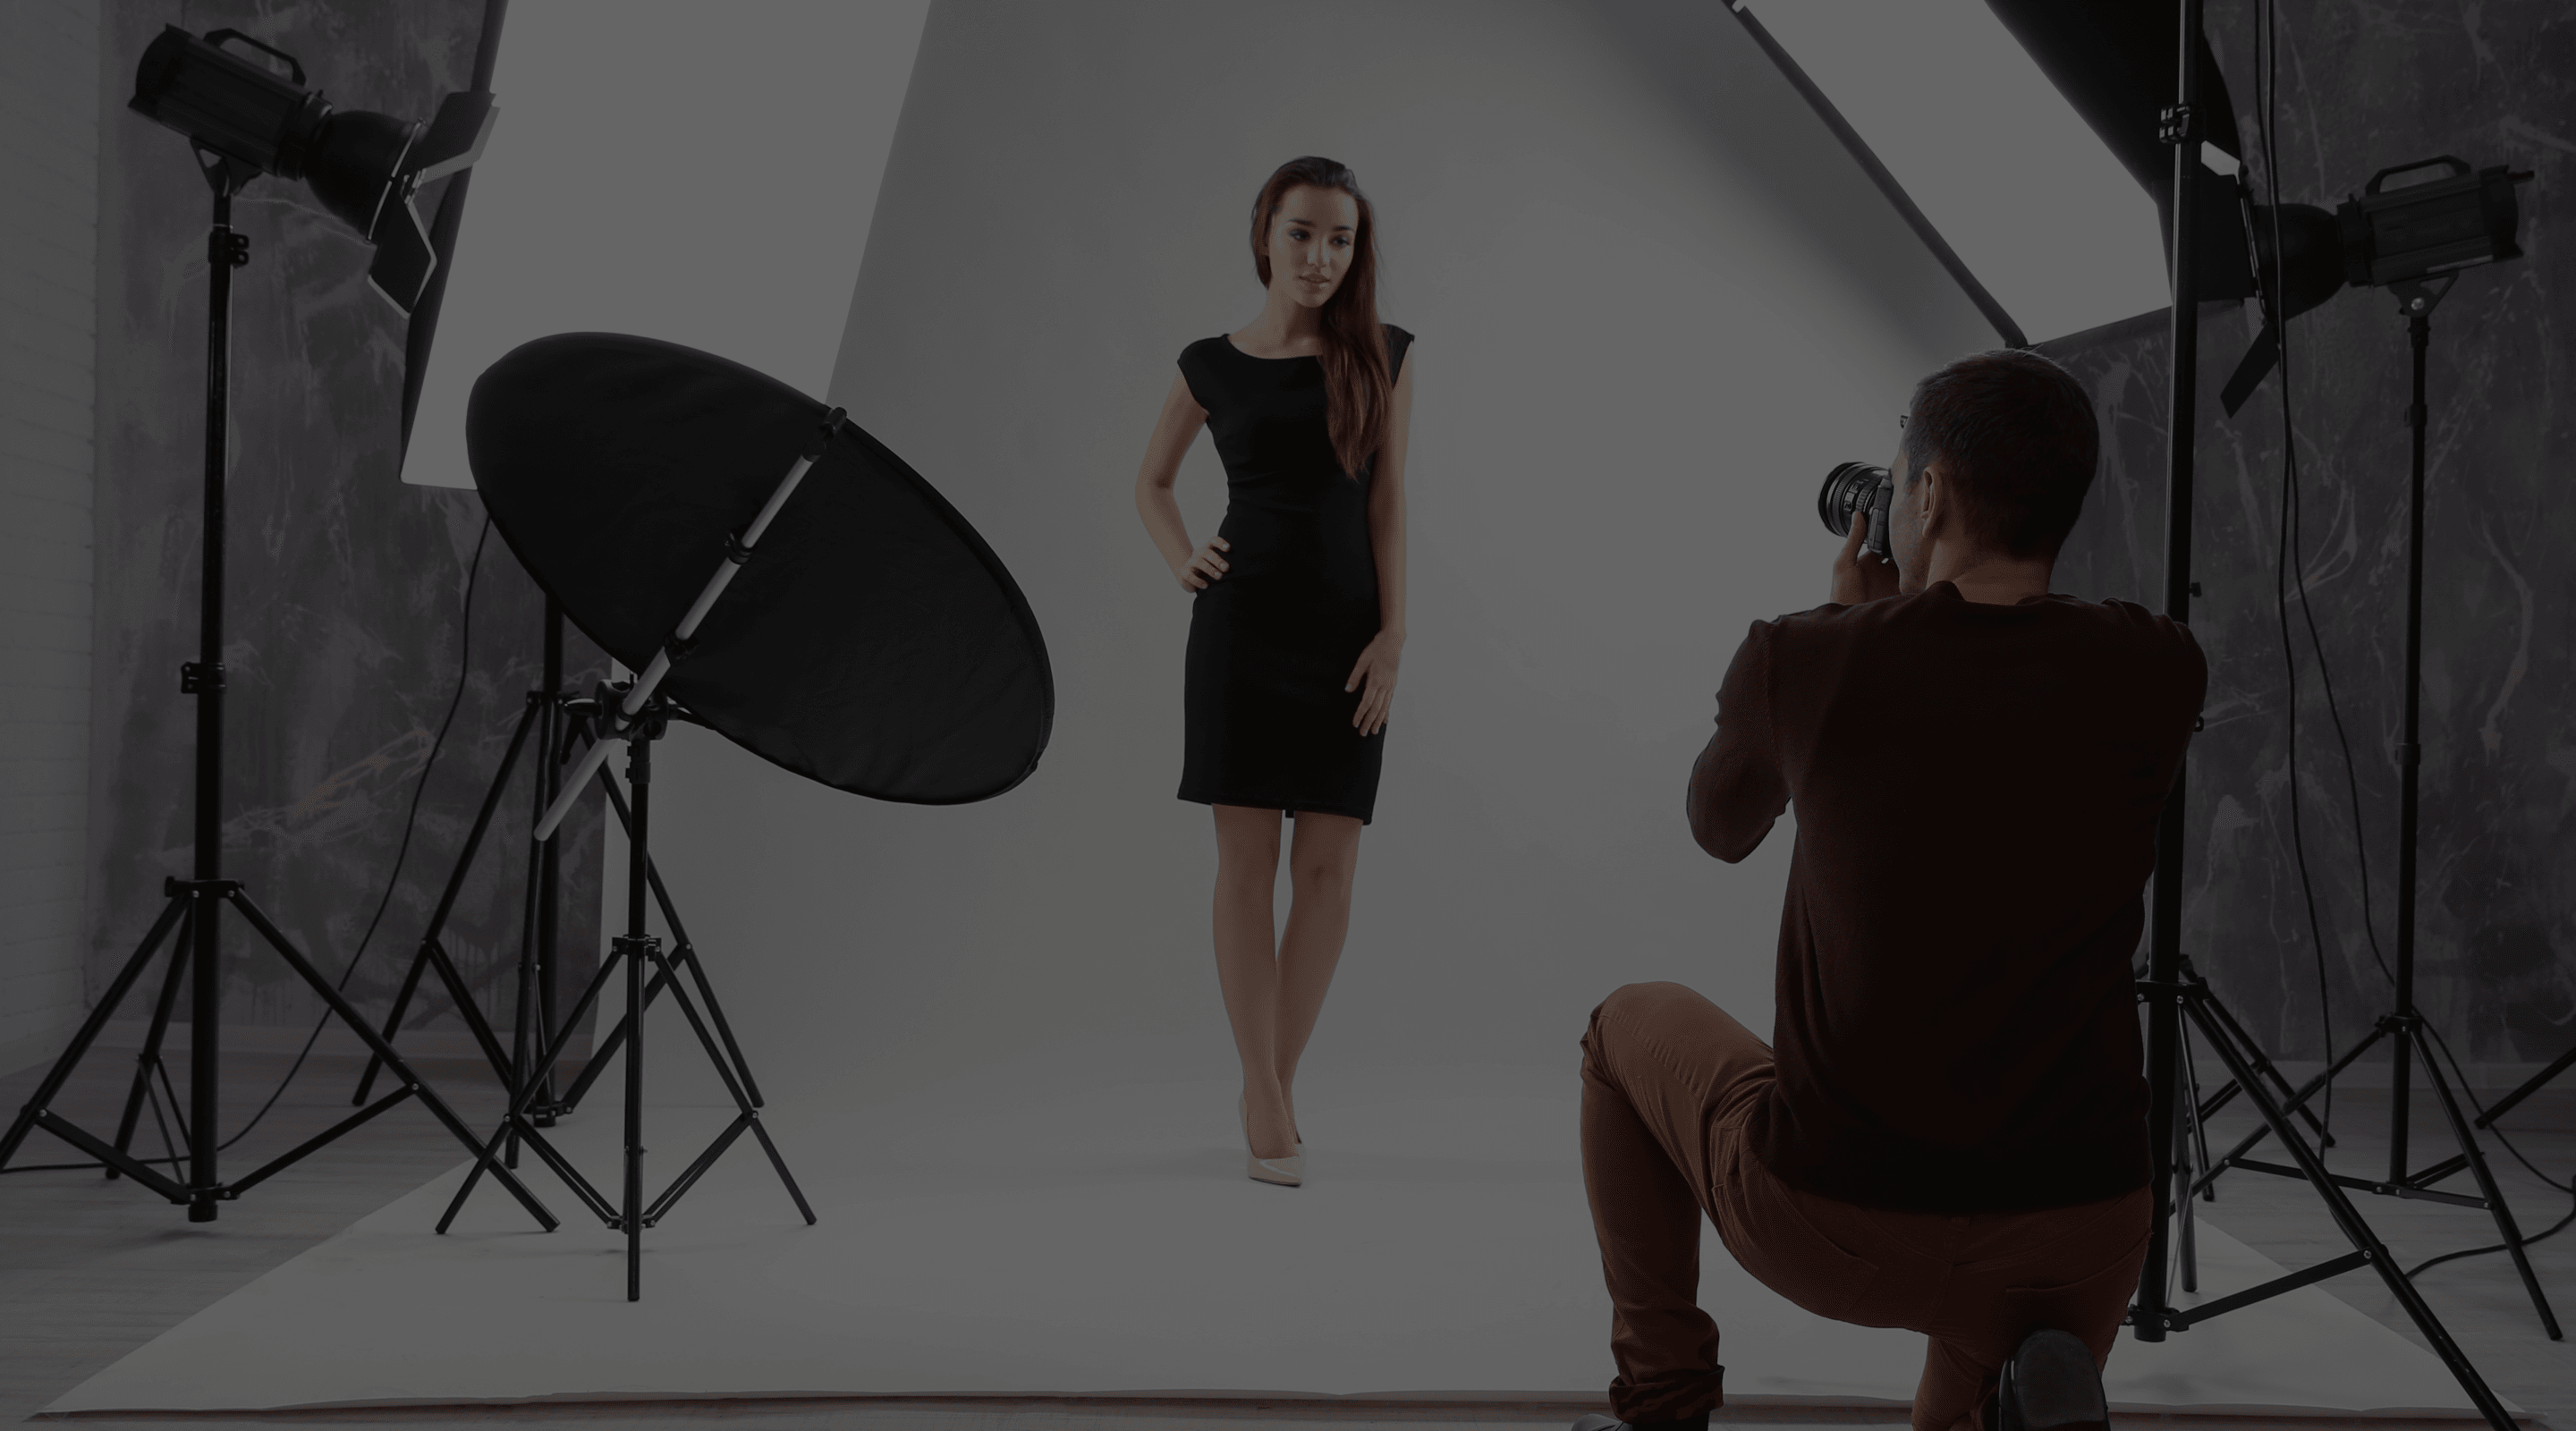 Man clicking a picture of woman in photo studio